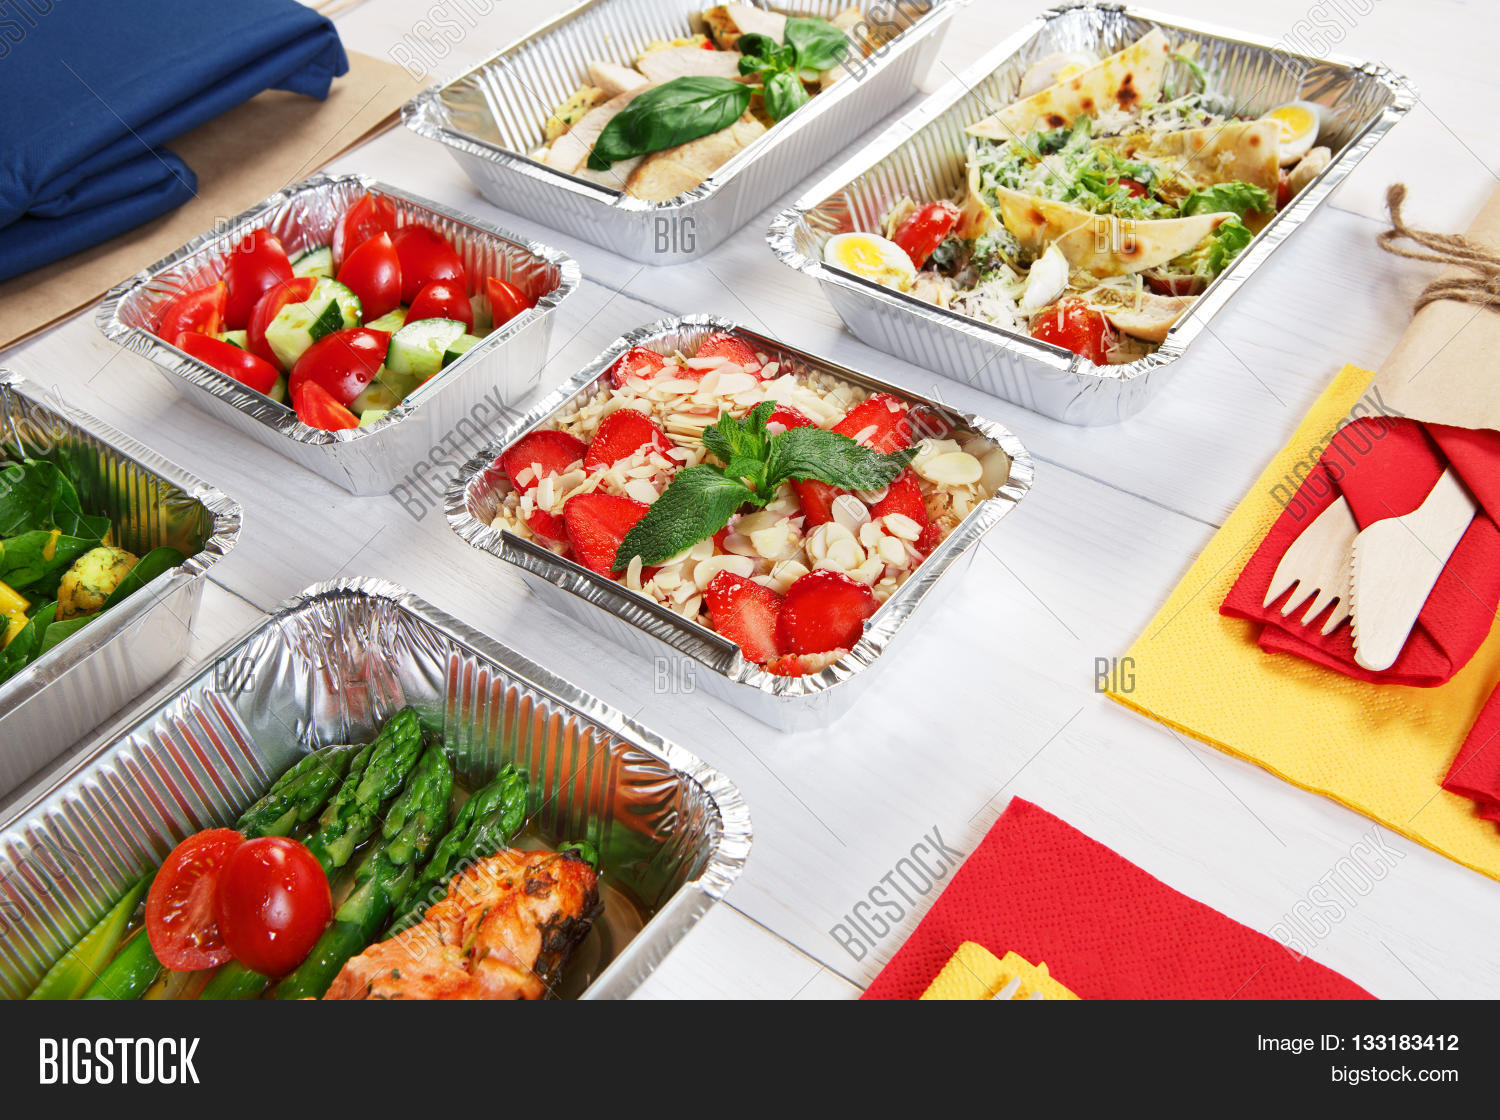 Healthy Food Delivery Image Photo Free Trial Bigstock